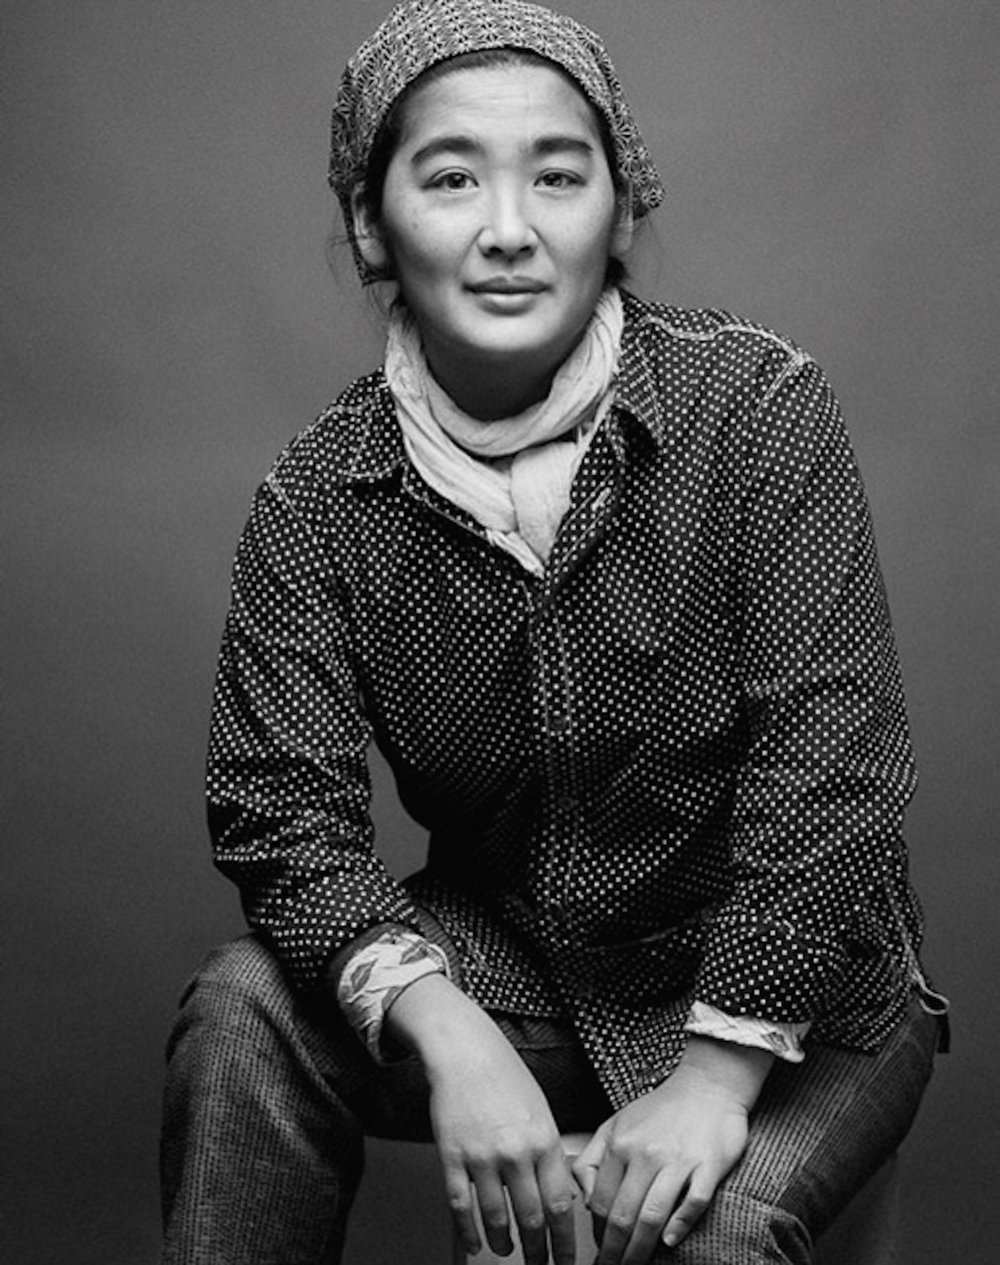 - Okada is a fibre artist, craft artisan and community arts organizer. She has organized multiple events and programs working with marginalized children, youth and families in East Vancouver, and in her current home in Hamilton, Ontario. She has exhibited work across Canada including Vancouver, BC; Toronto and Hamilton, Ontario. Okada is a storyteller with The Hamilton 7. She currently serves on the Steering Committee of the Coalition of Black and Racialized Artists (COBRA) in Hamilton, Ontario.e: mr_longears@yahoo.ca